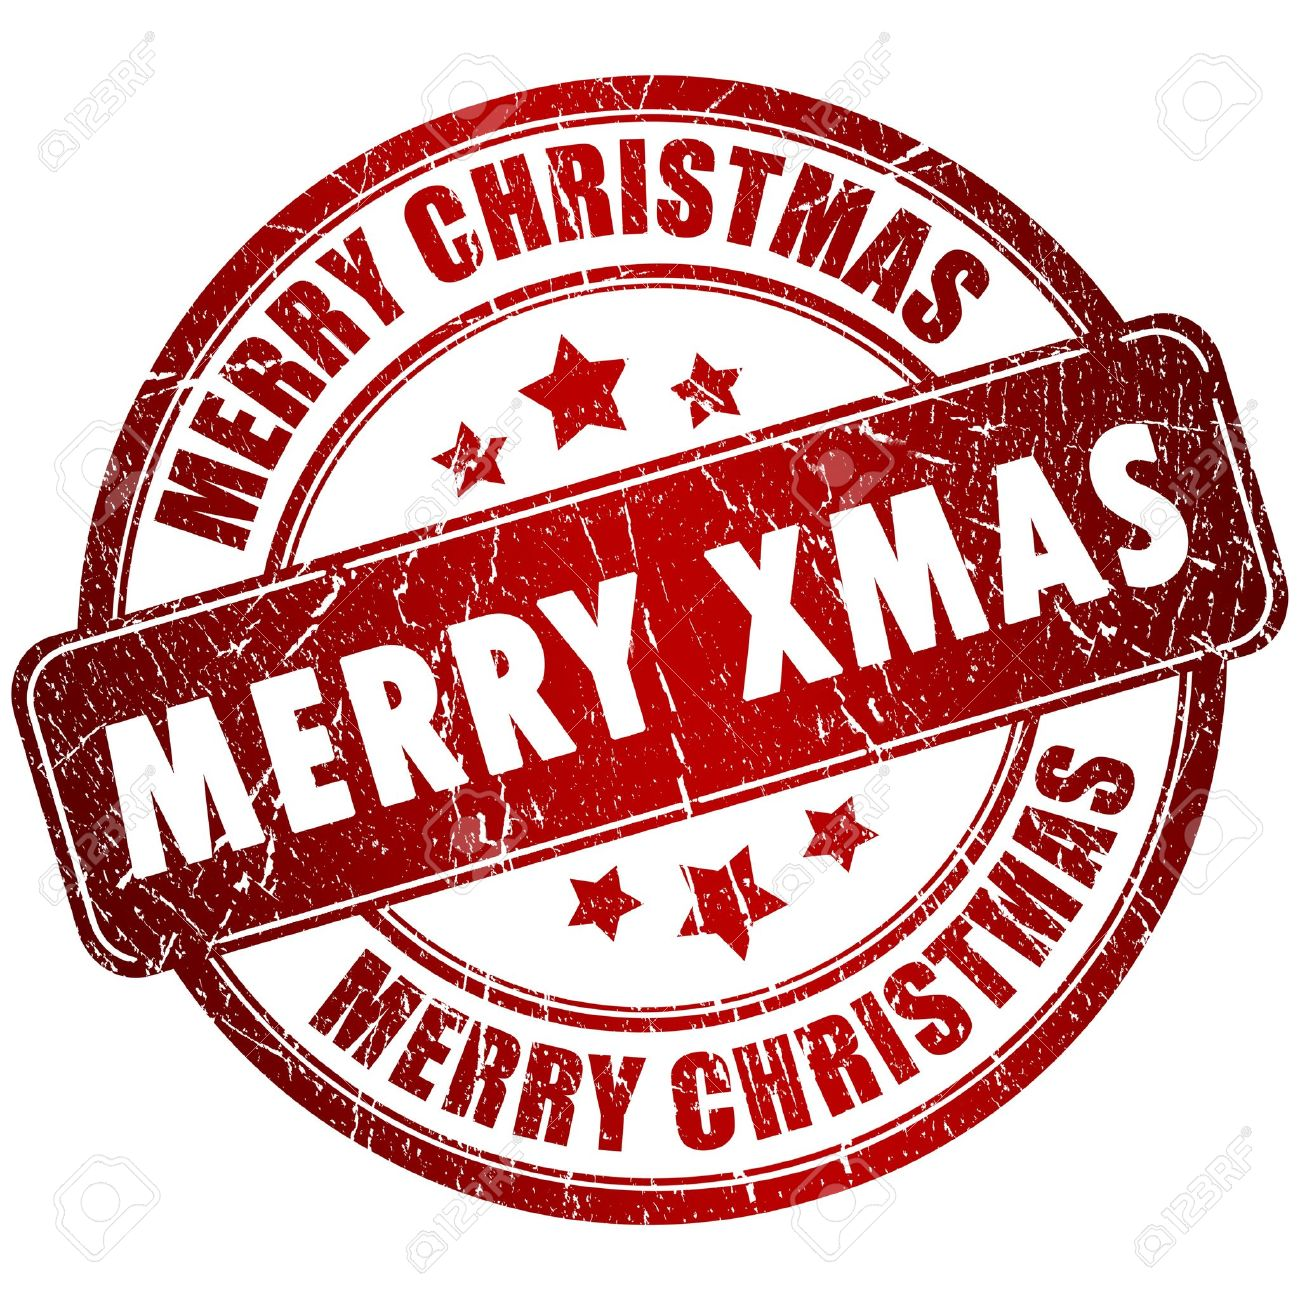 Merry Christmas Stamp Stock Photo, Picture And Royalty Free Image ...